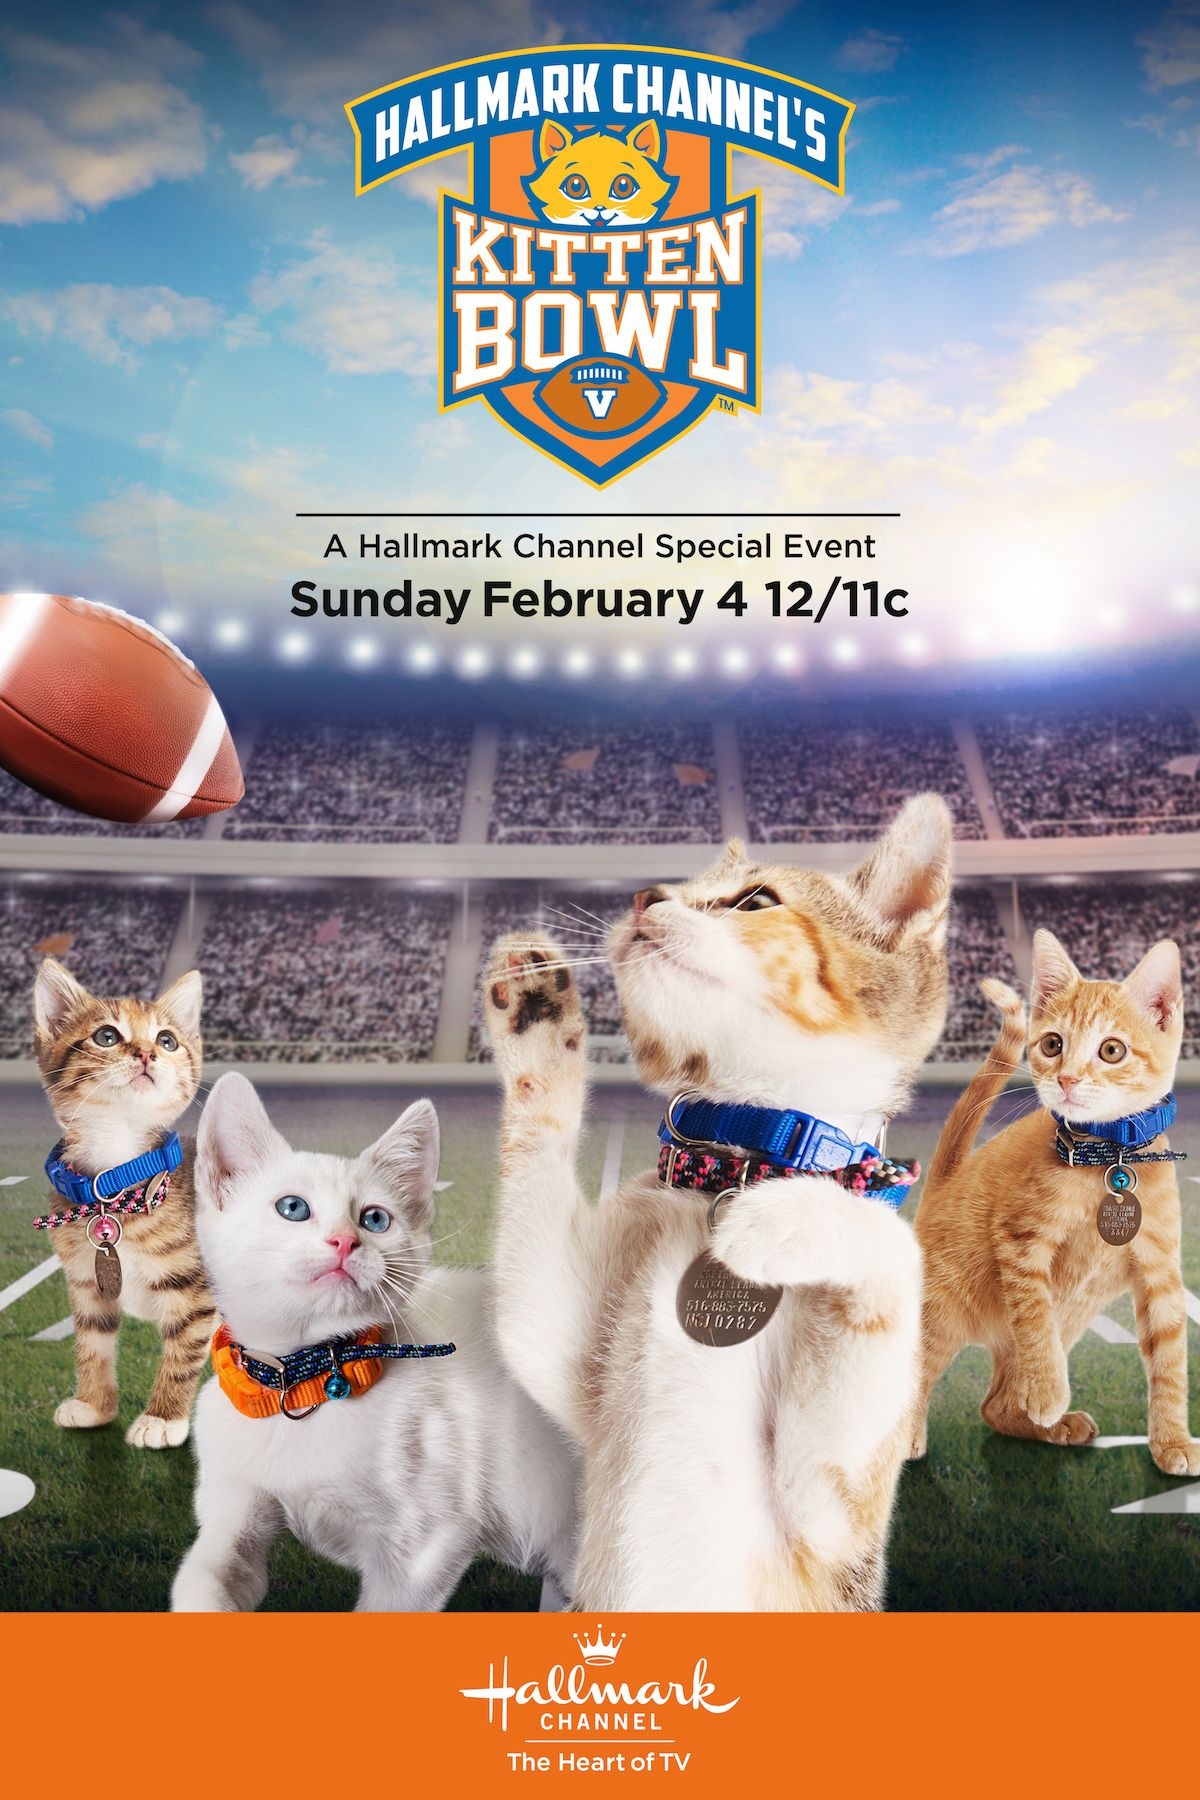 Get Ready For The Big Game It S Kitten Bowl V Premiering February 4 12 11c On Hallmark Channel Kittenbowl Hallmark Kitten Bowls Kitten Hallmark Channel